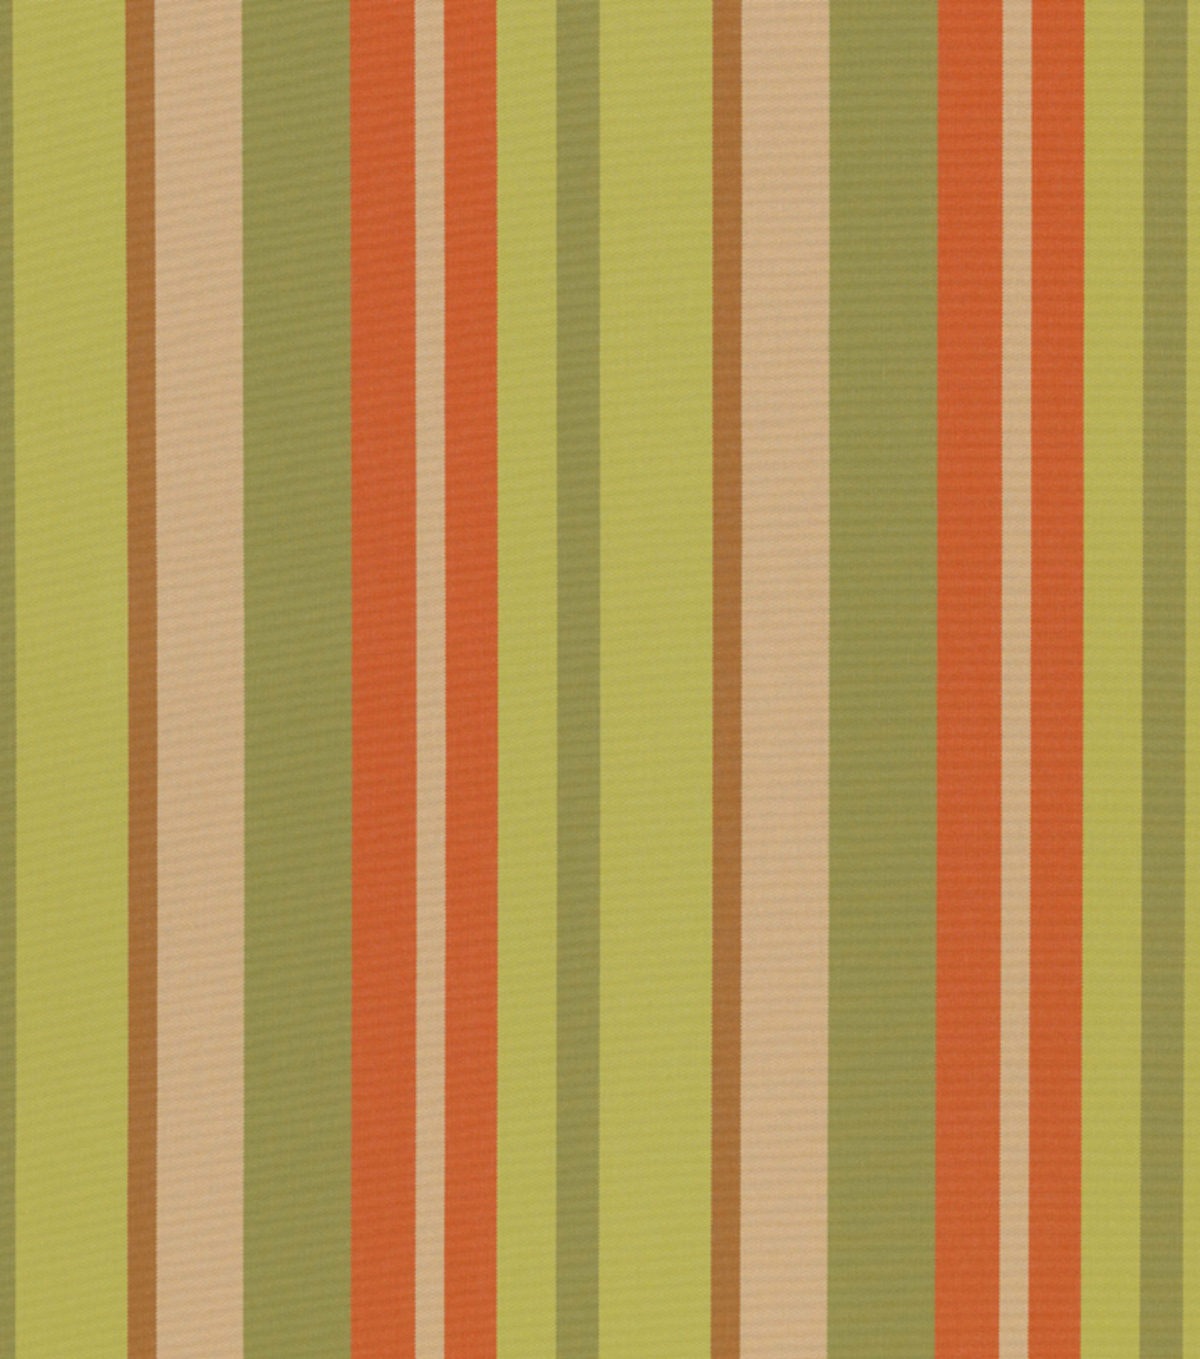 Home Decor 8\u0022x8\u0022 Fabric Swatch-Lapalma-Pear